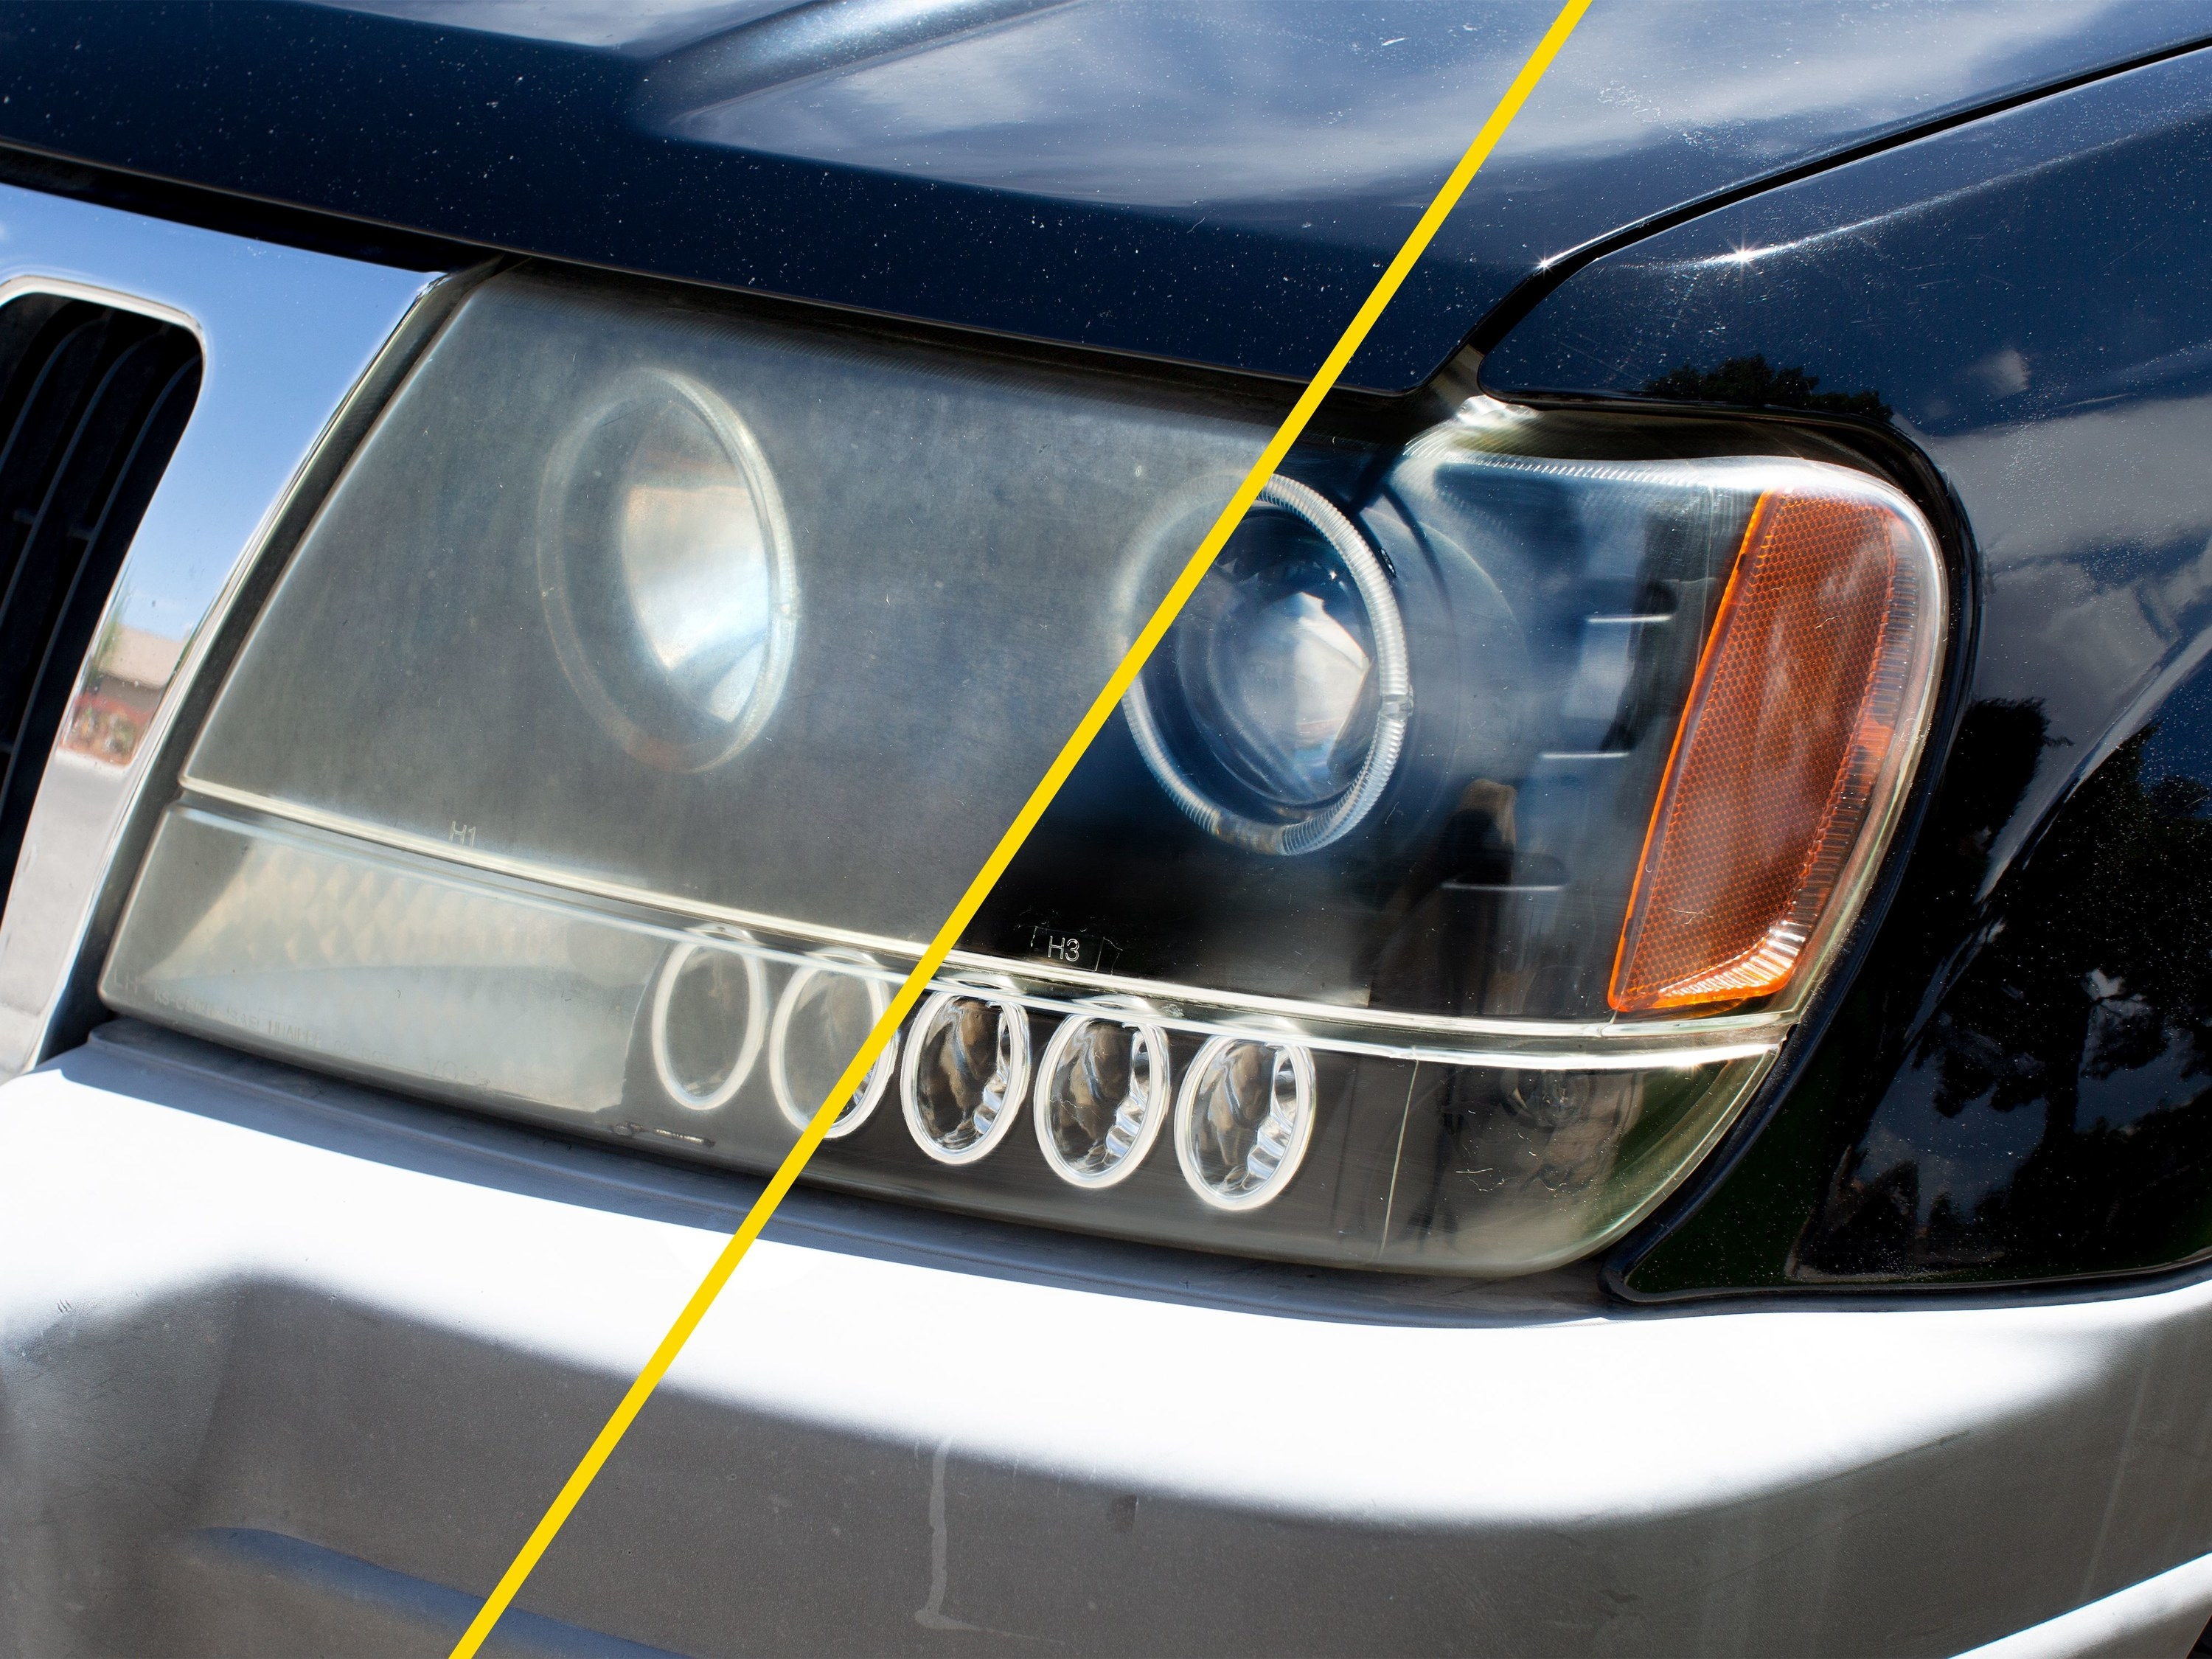 before and after image showing a foggy headlight and a clear headlight after cleaning